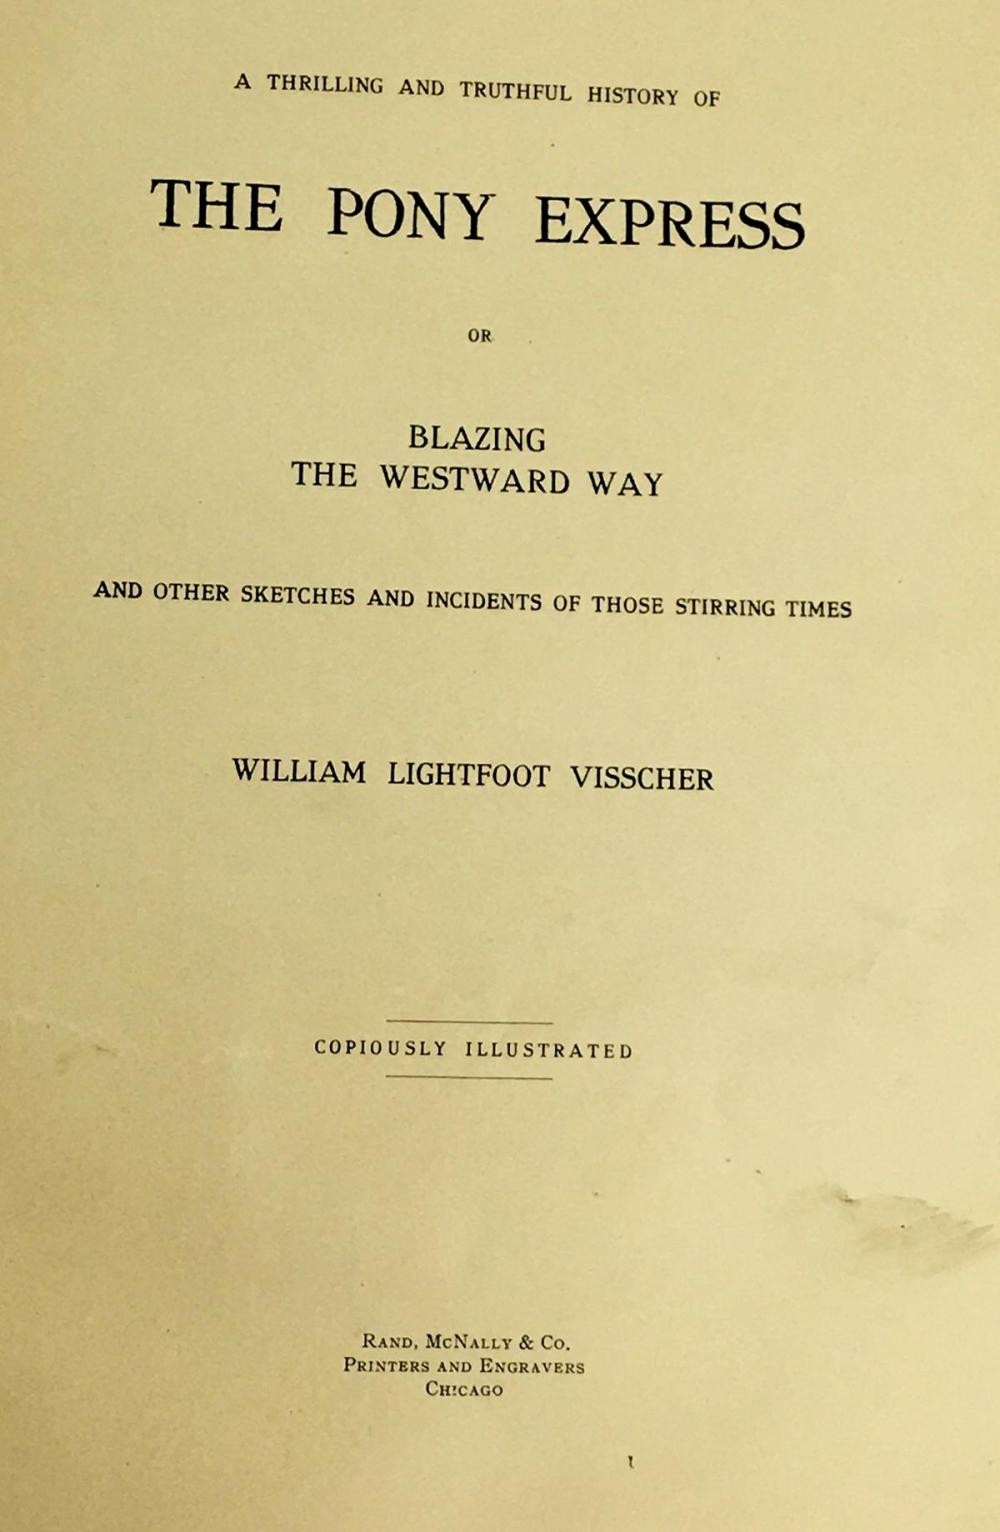 1908 The Pony Express or Blazing The Westward Way by William Lightfoot Visscher Illustrated FIRST EDITION